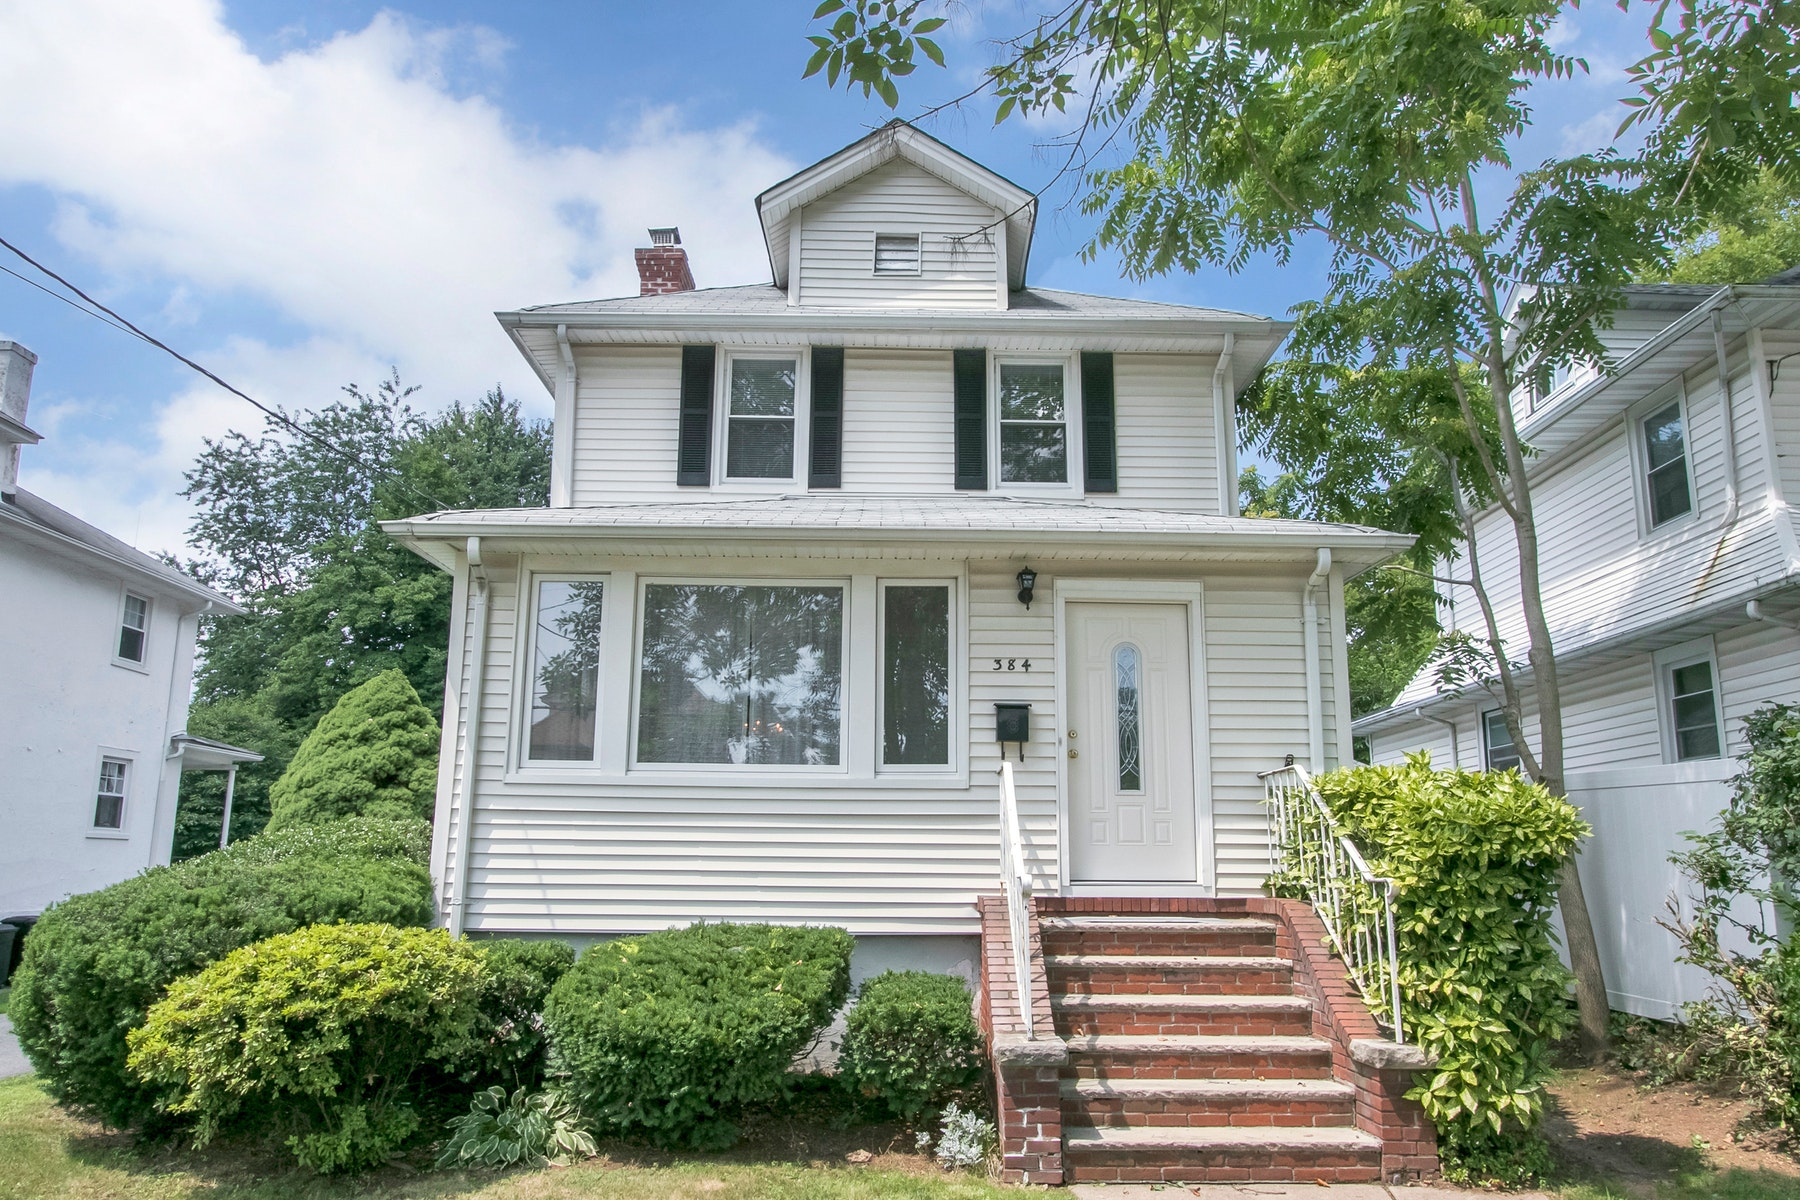 Single Family Home for Sale at Gracious Colonial - Sale Pending 384 Elm Avenue, Bogota, New Jersey 07603 United States